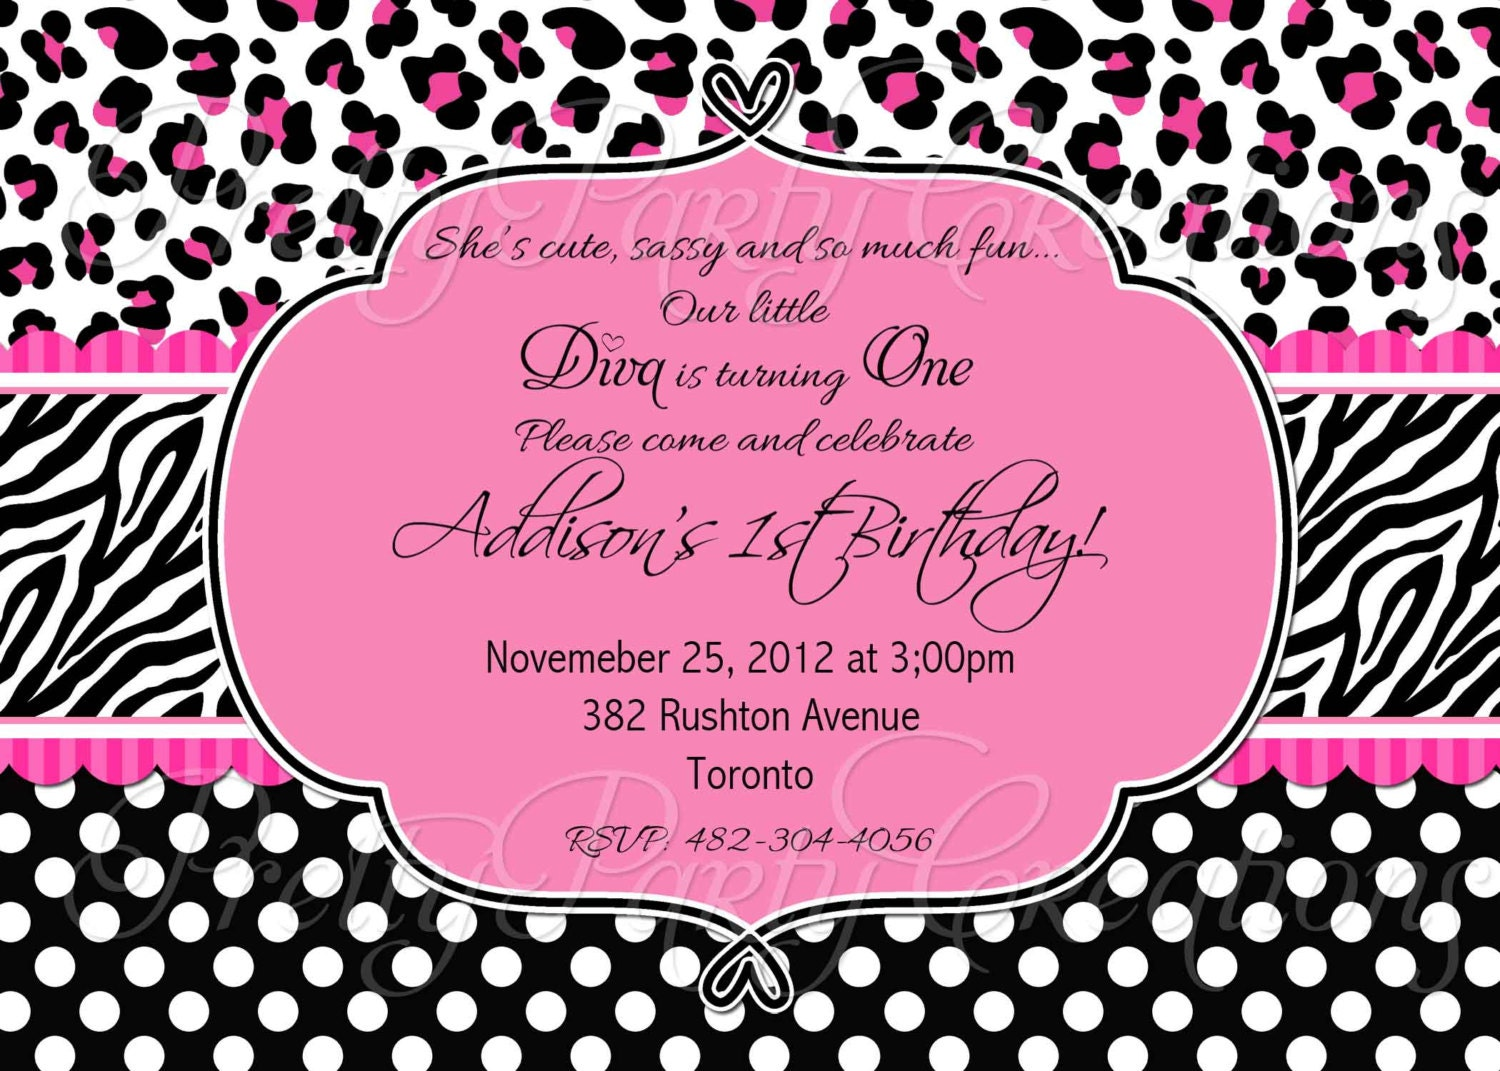 Request a custom order and have something made just for you Pink Animal Print Invitations